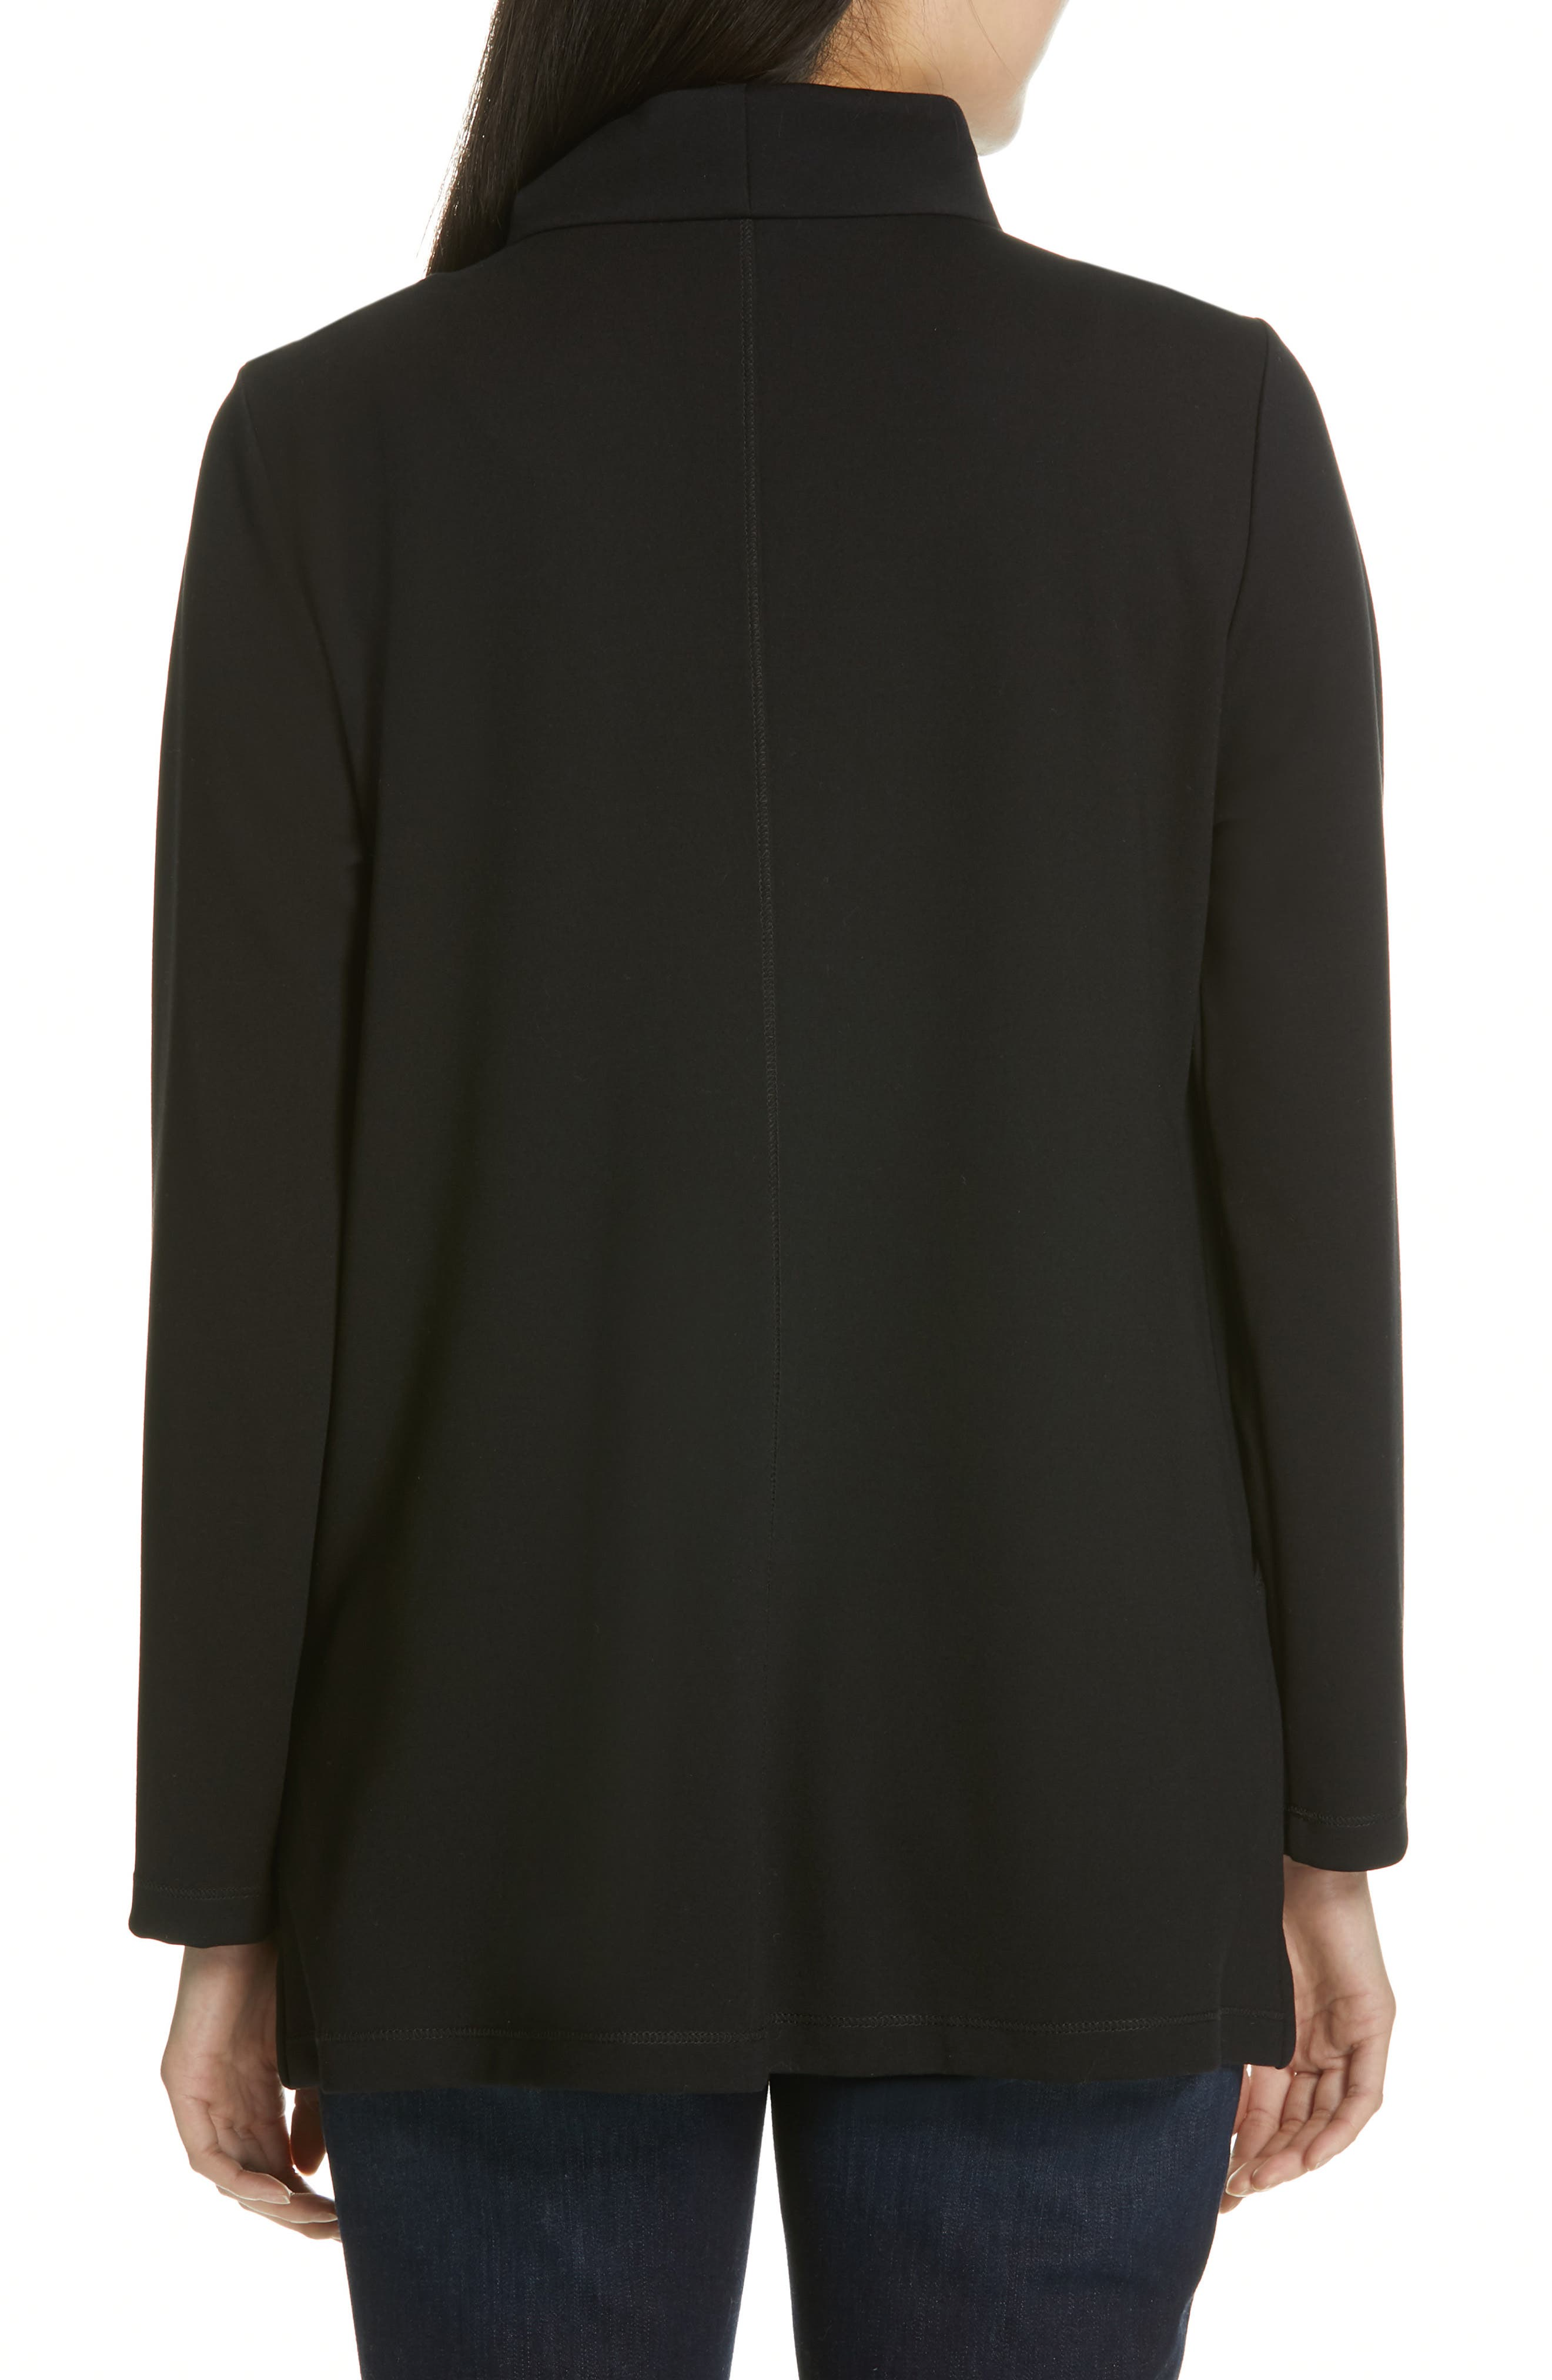 EILEEN FISHER, Zip Front Jacket, Alternate thumbnail 2, color, 001